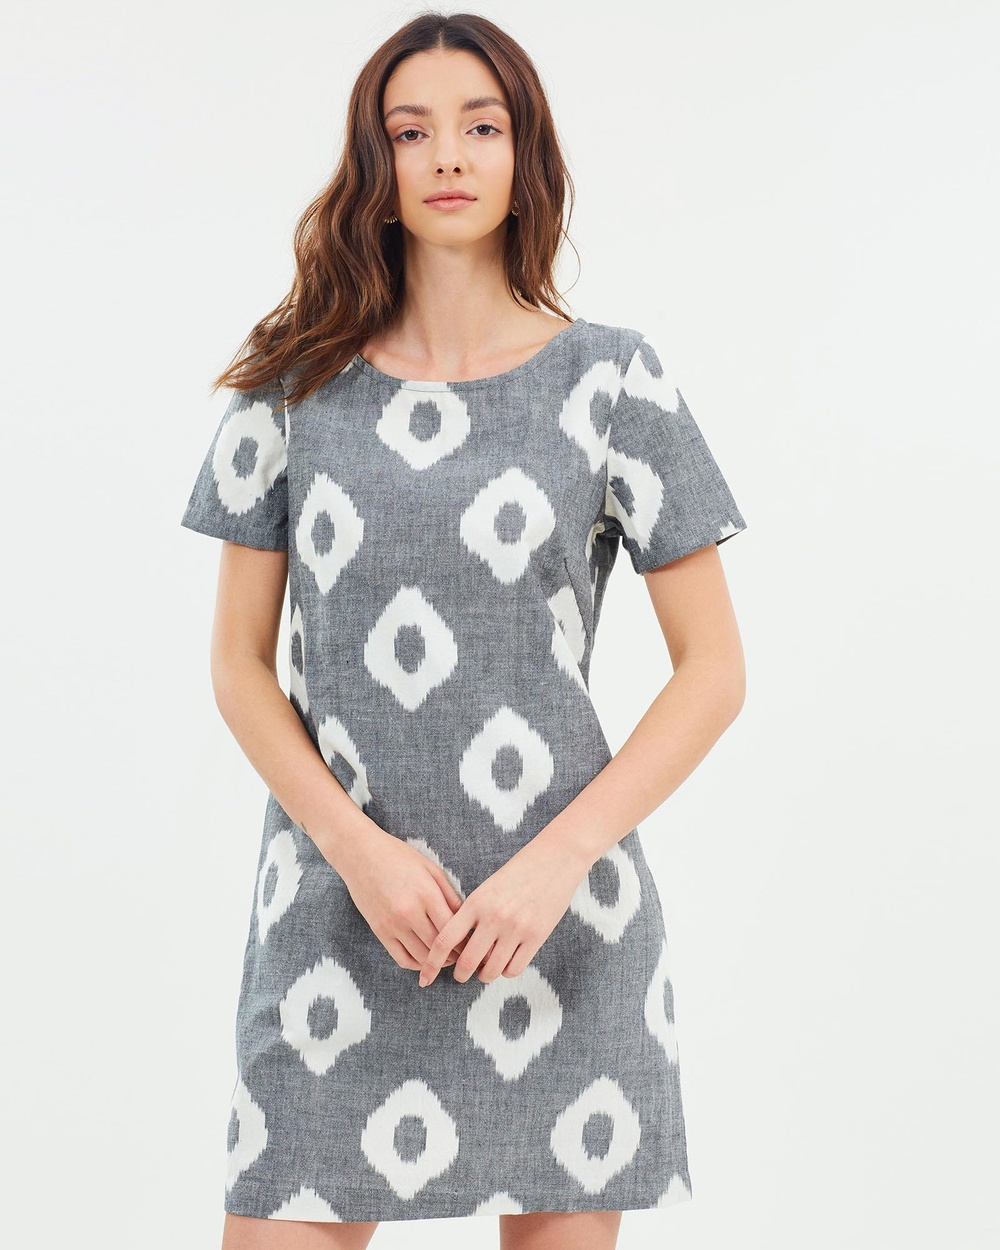 Carlie Ballard New Best Friend Dress Dresses Grey Spot  New Best Friend Dress